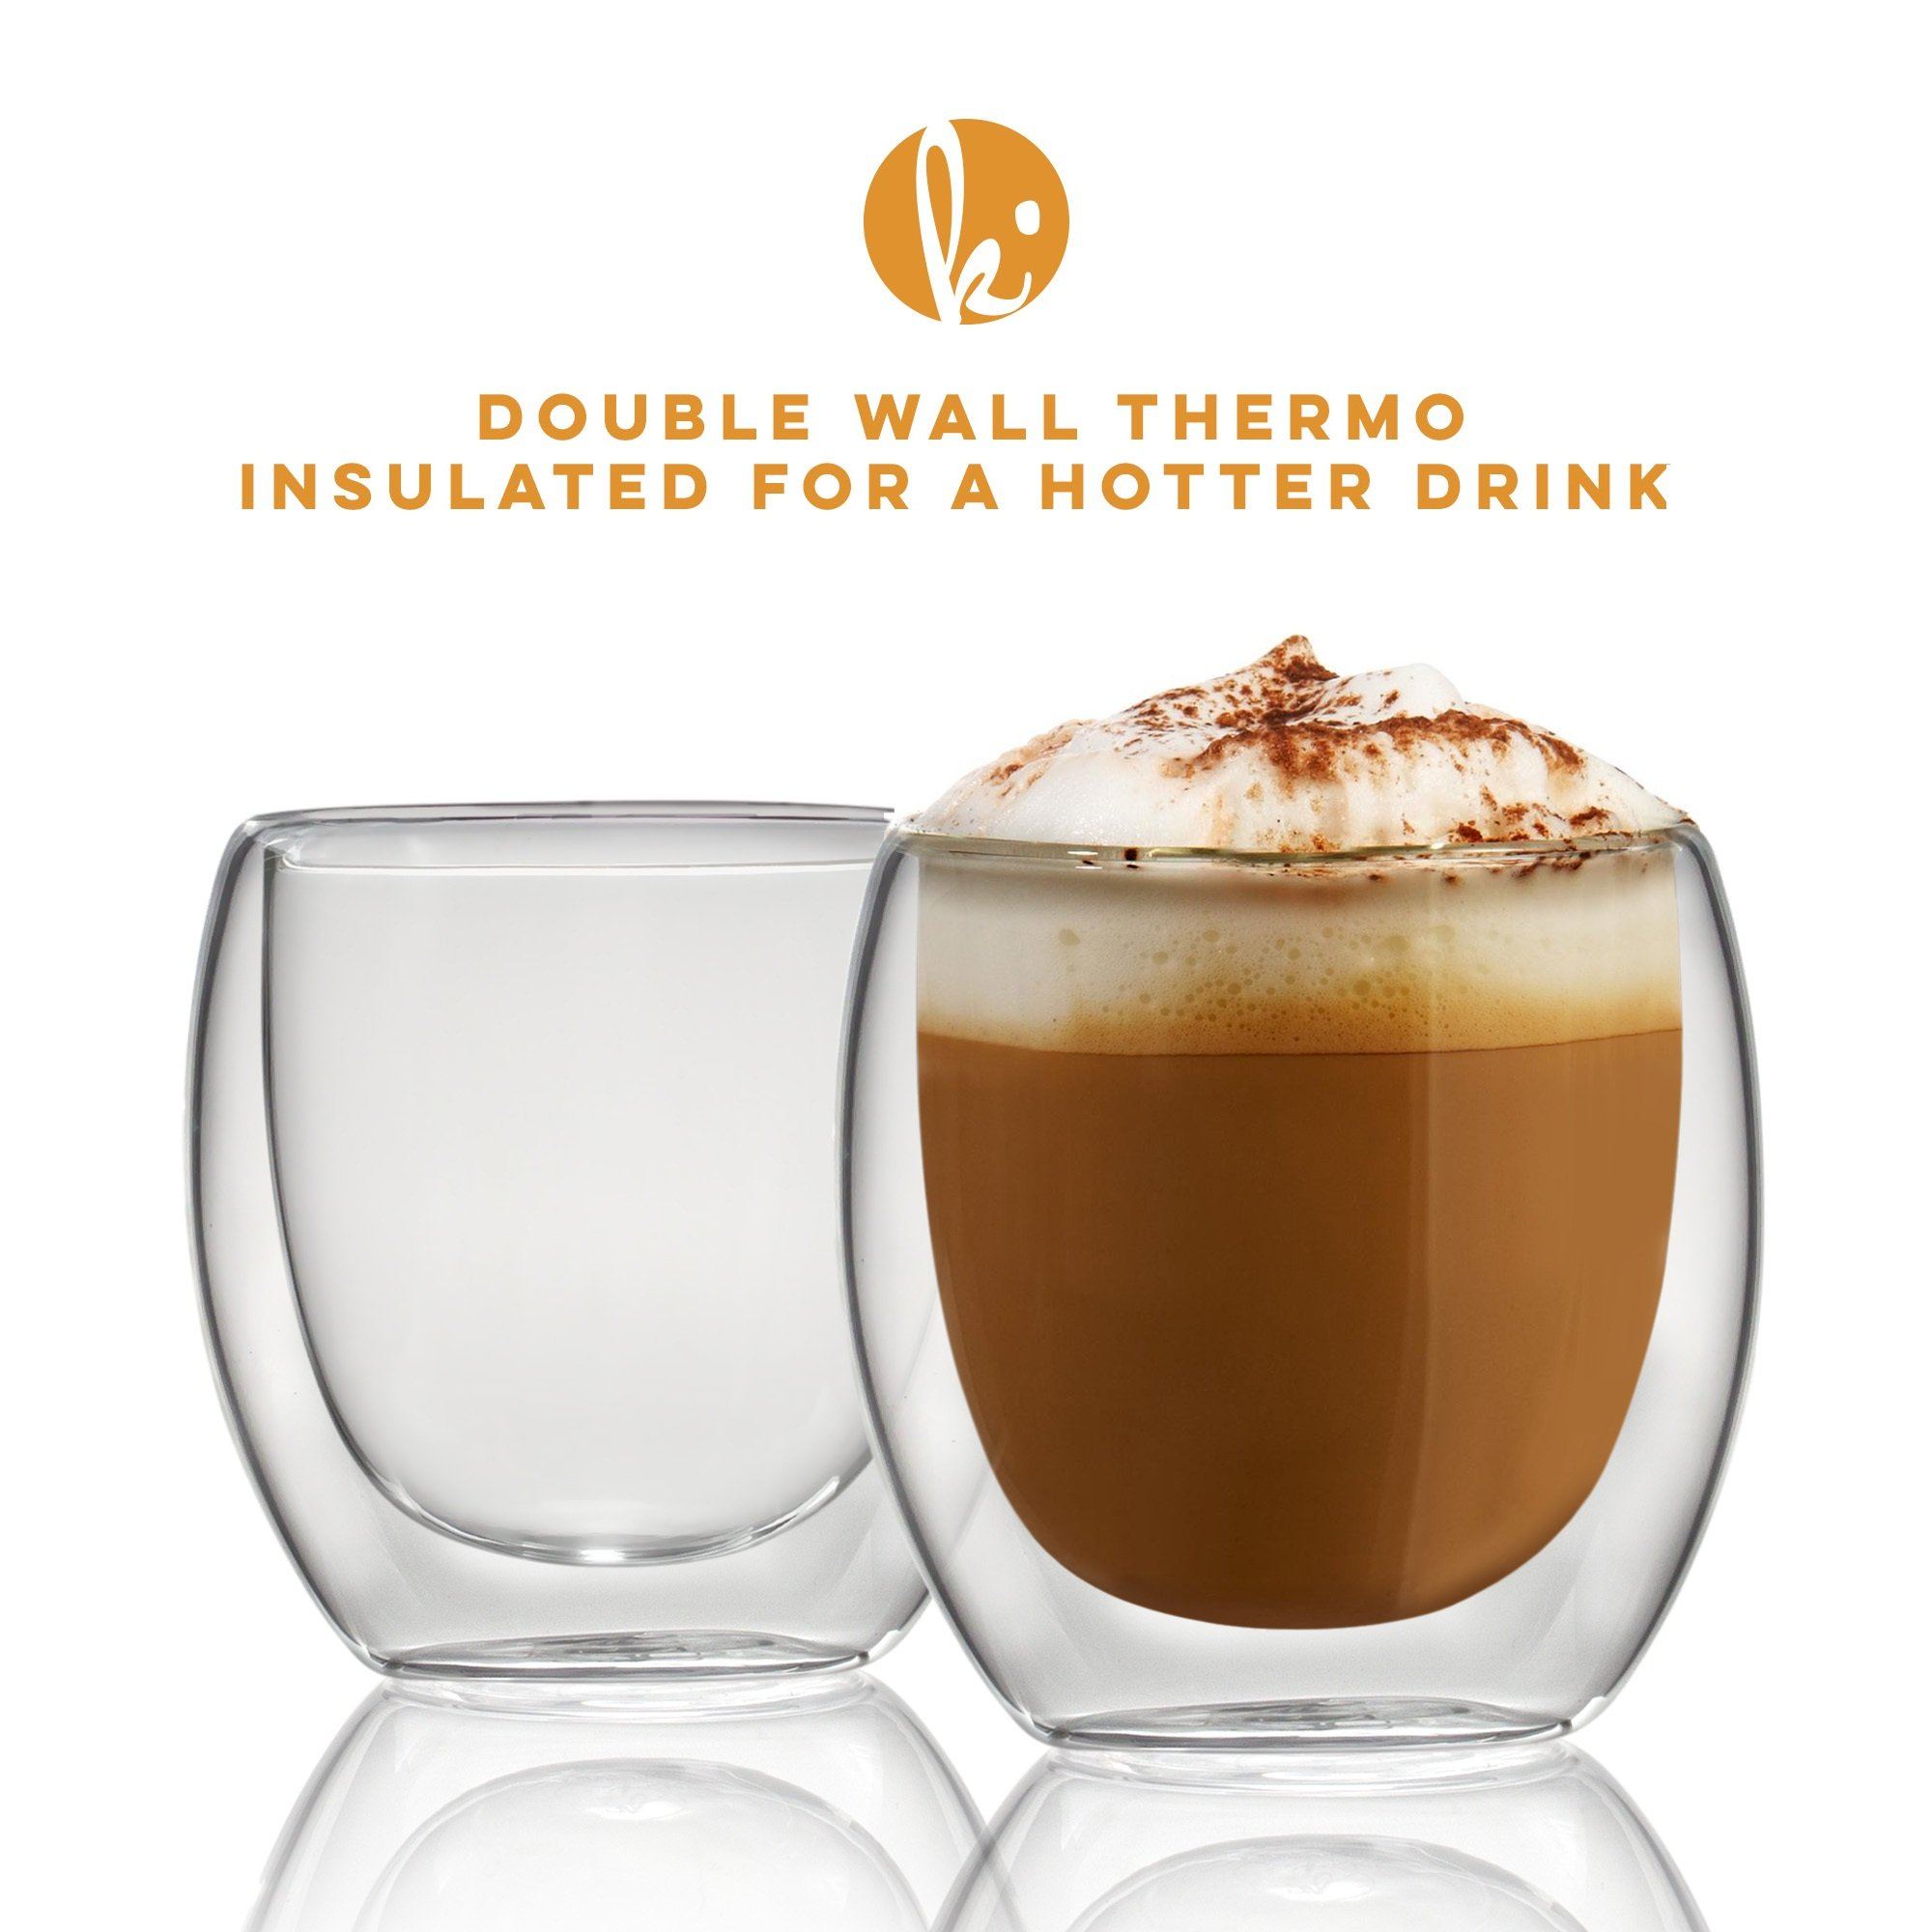 Espresso Cups Shot Glass Coffee Set of 4 - Double Wall Thermo Insulated by Kitchables (Image #4)